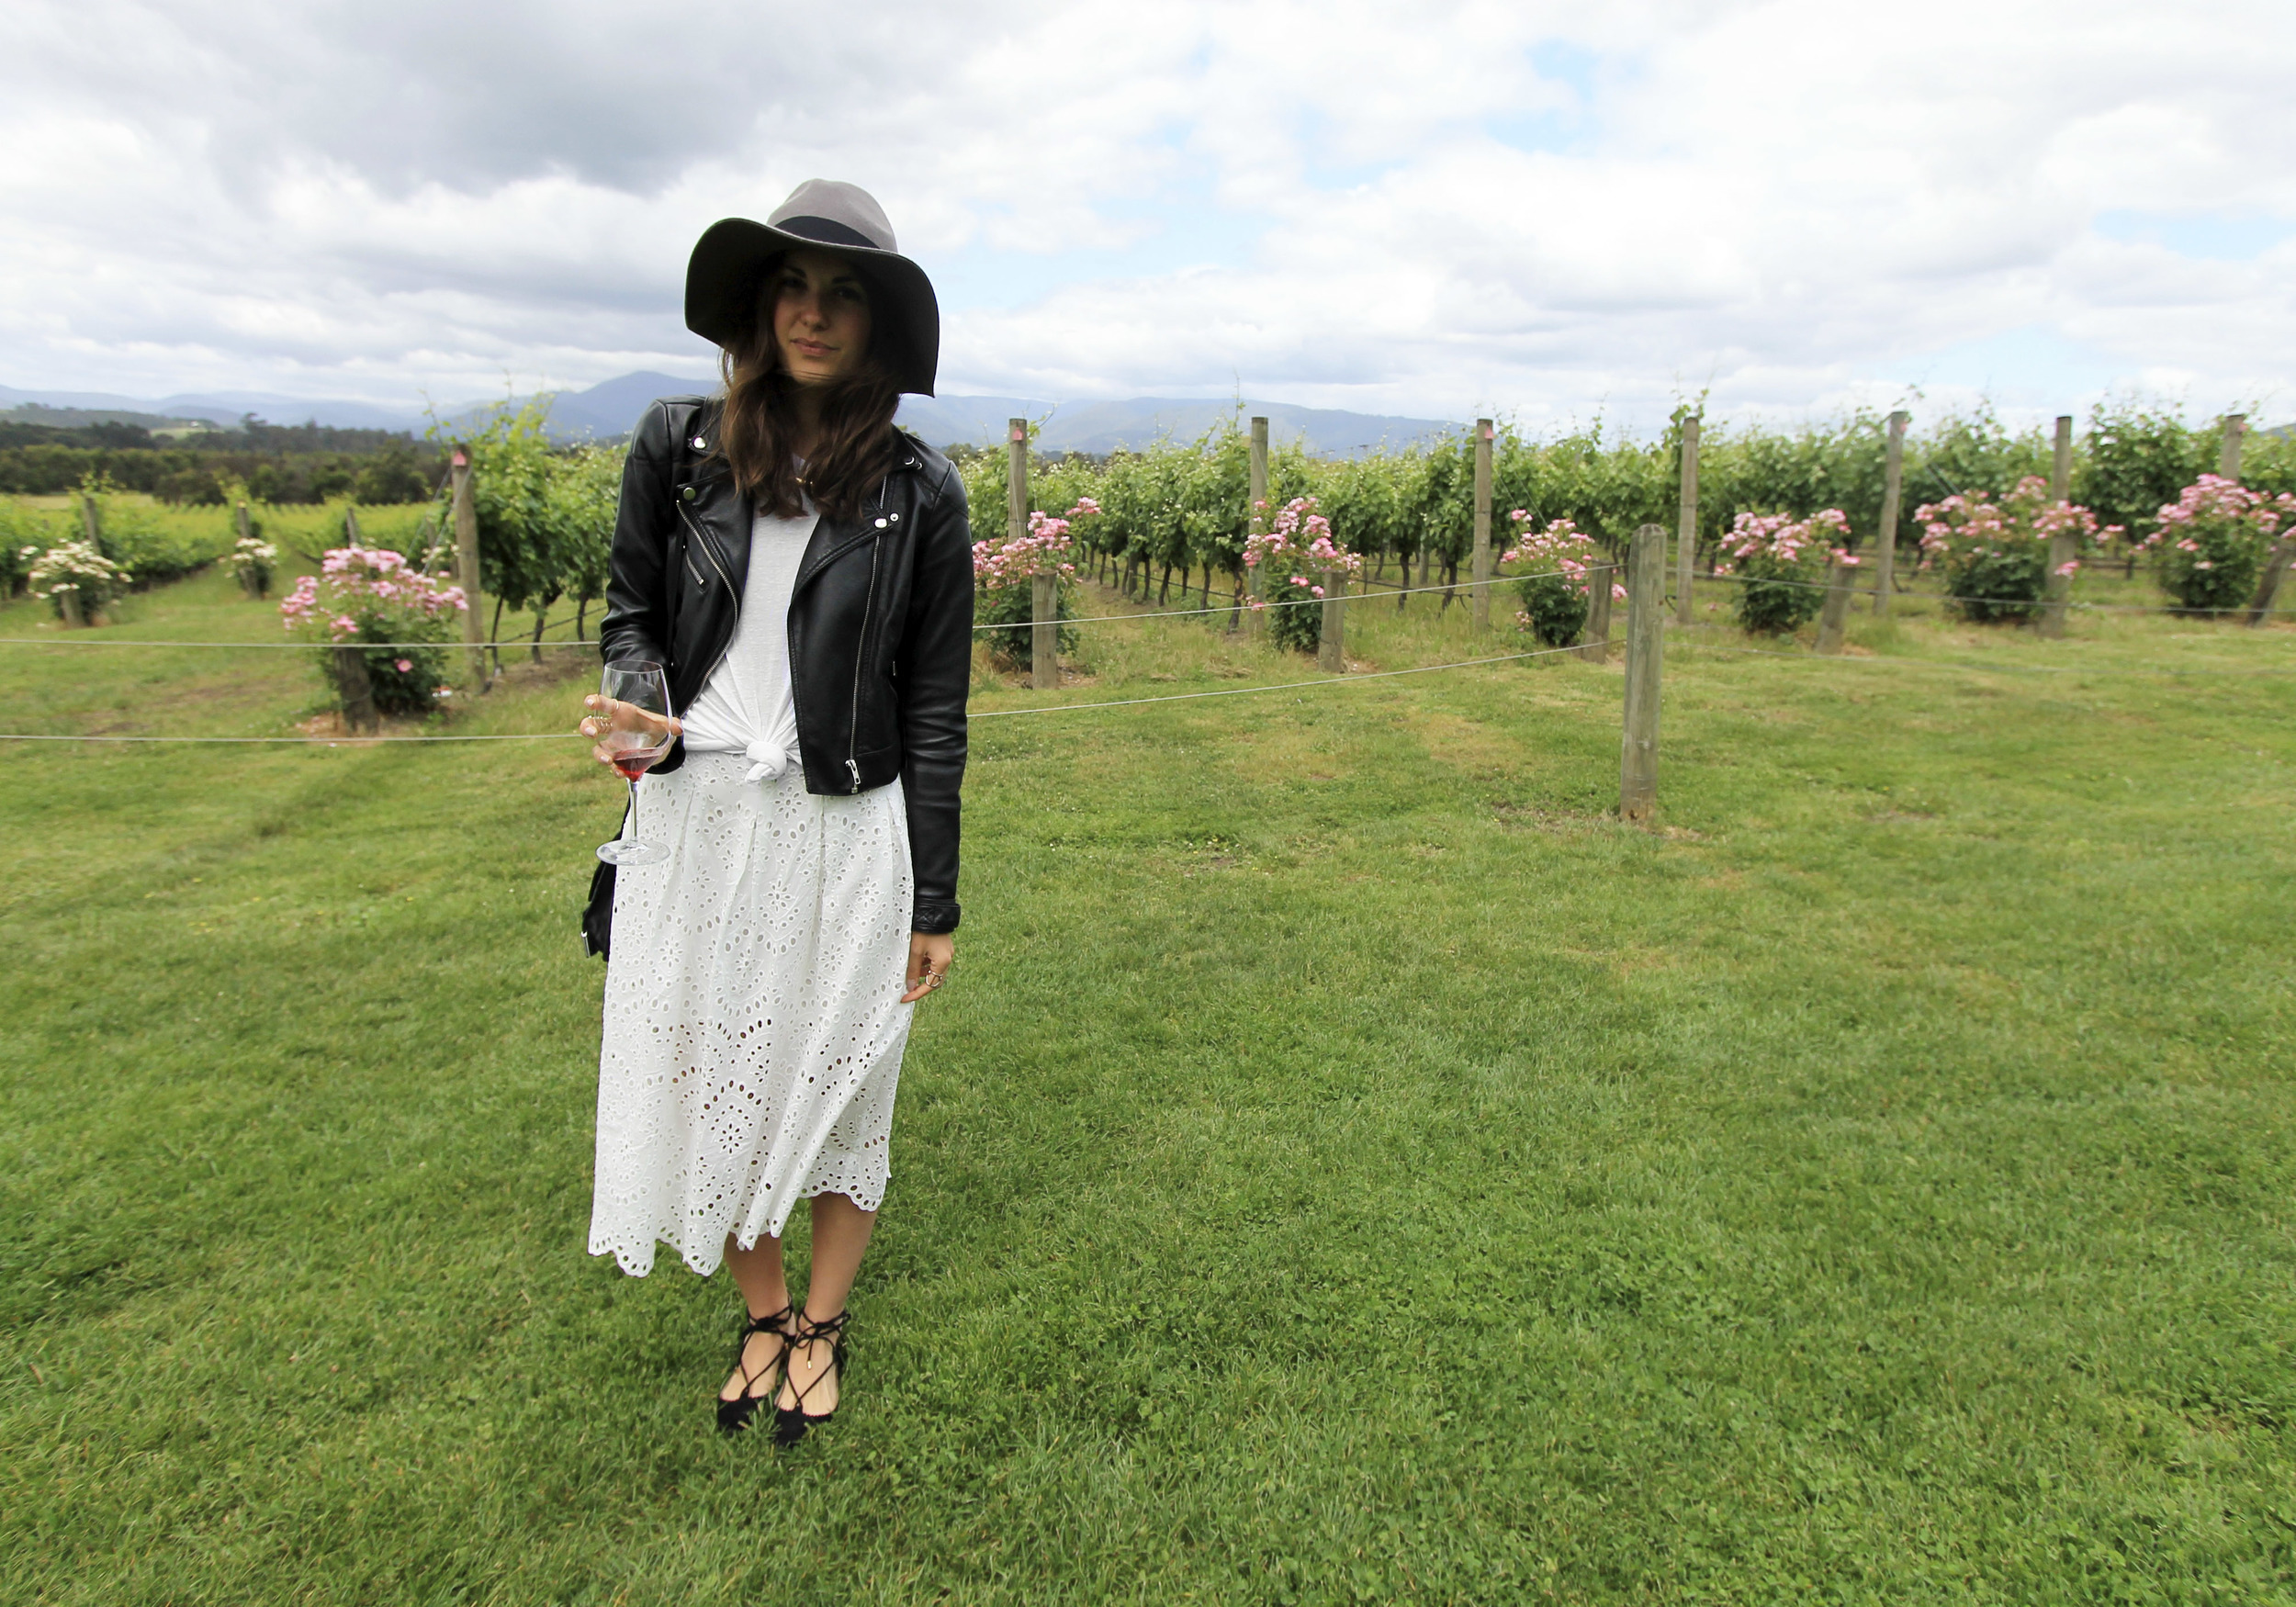 yarra-valley-wine-tour-fashion-blogger-outfit-australia-travel.jpg